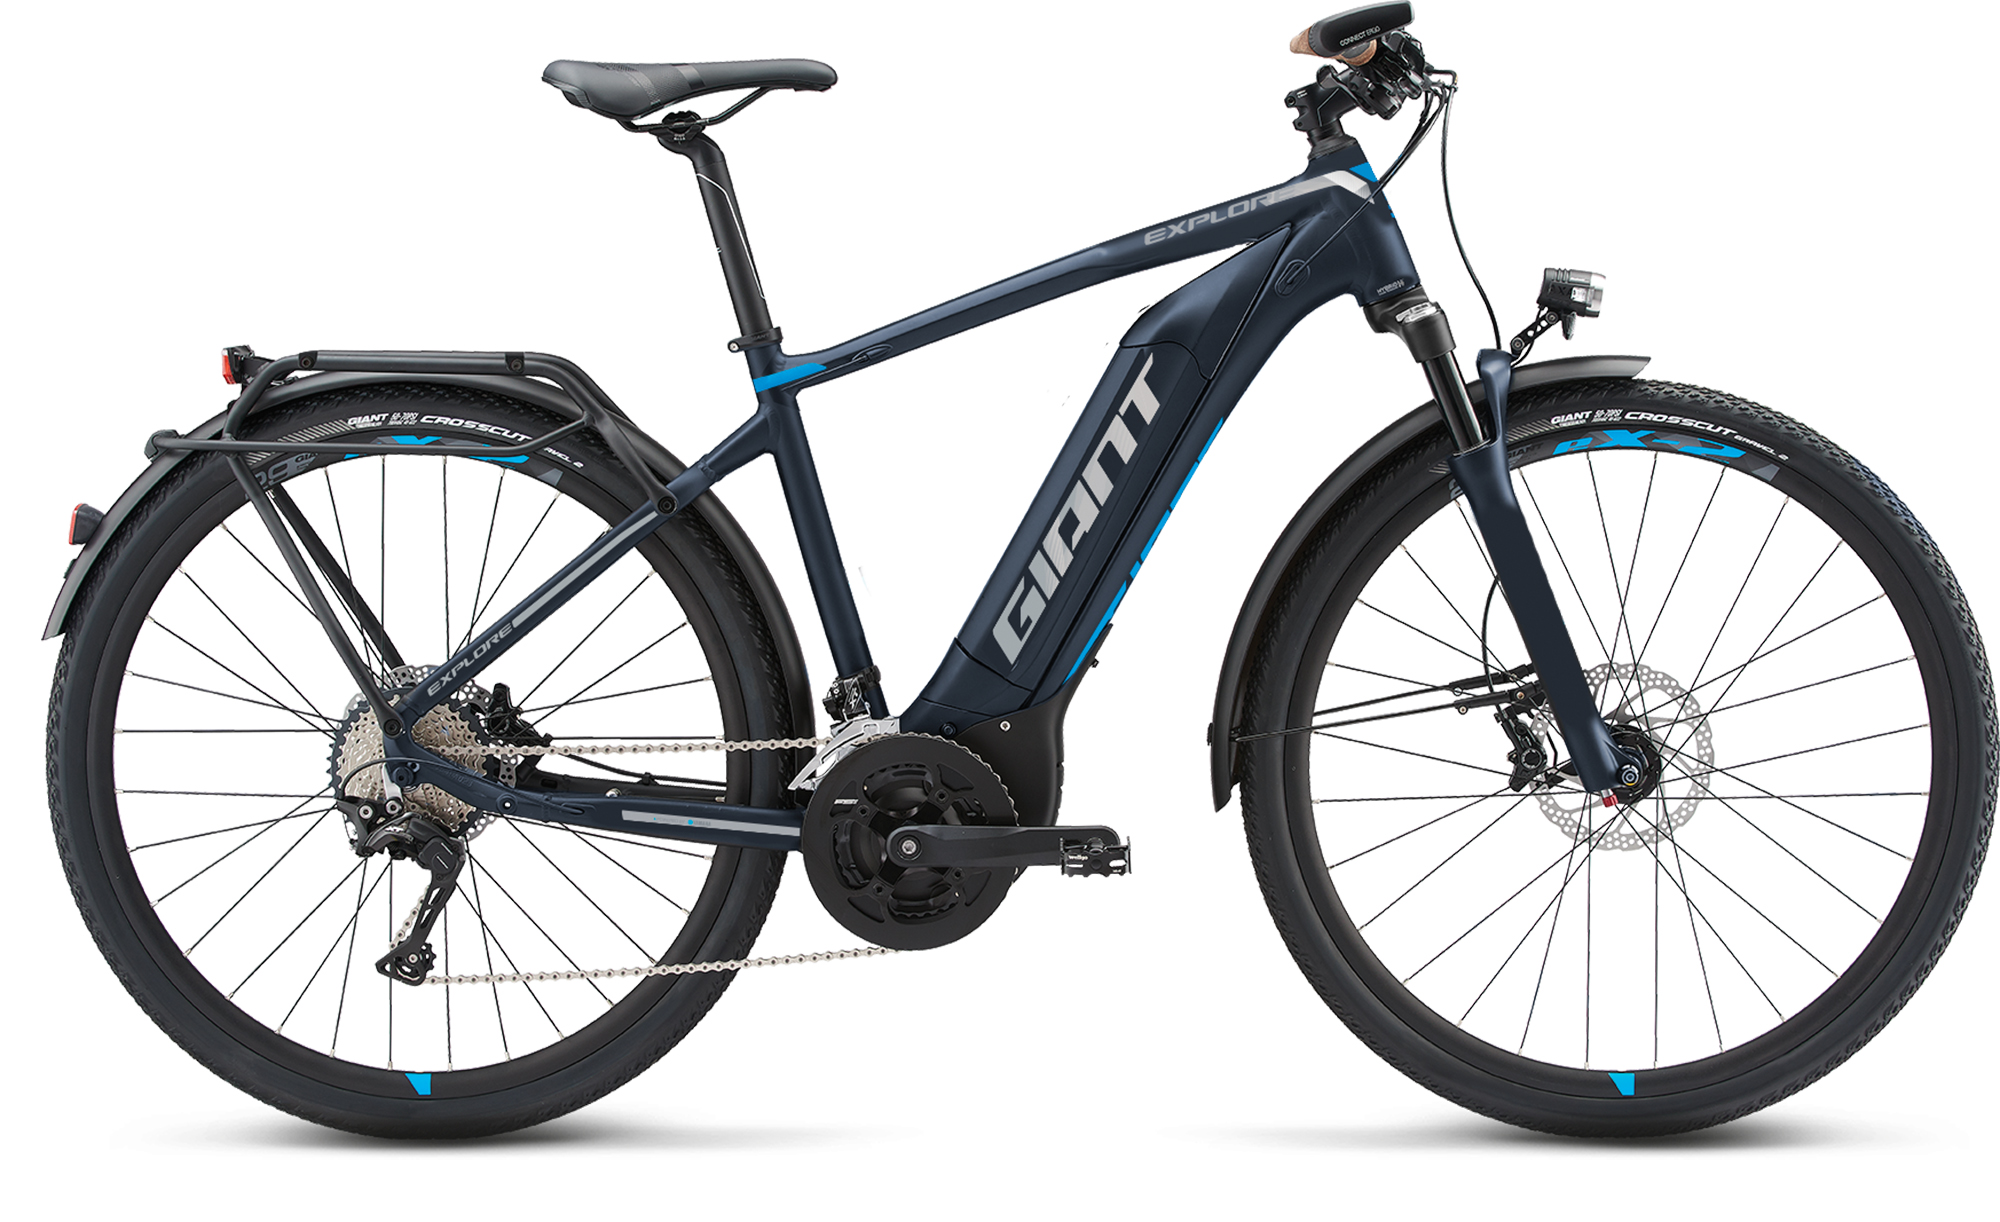 trekking touren ebikes kalkhoff endeavour 5 b xxl damen 2019. Black Bedroom Furniture Sets. Home Design Ideas